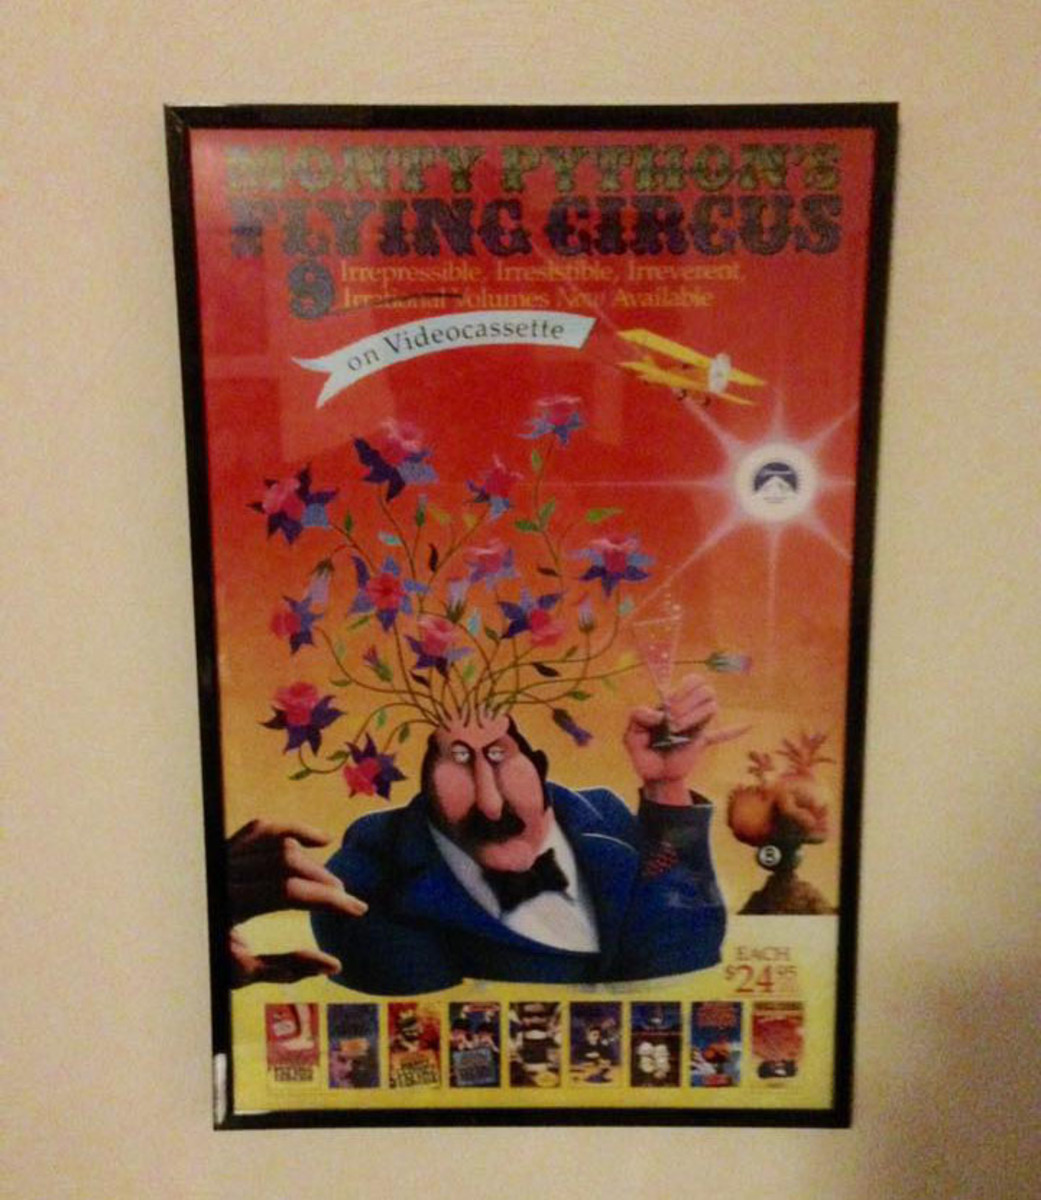 how to frame and hang posters dengarden